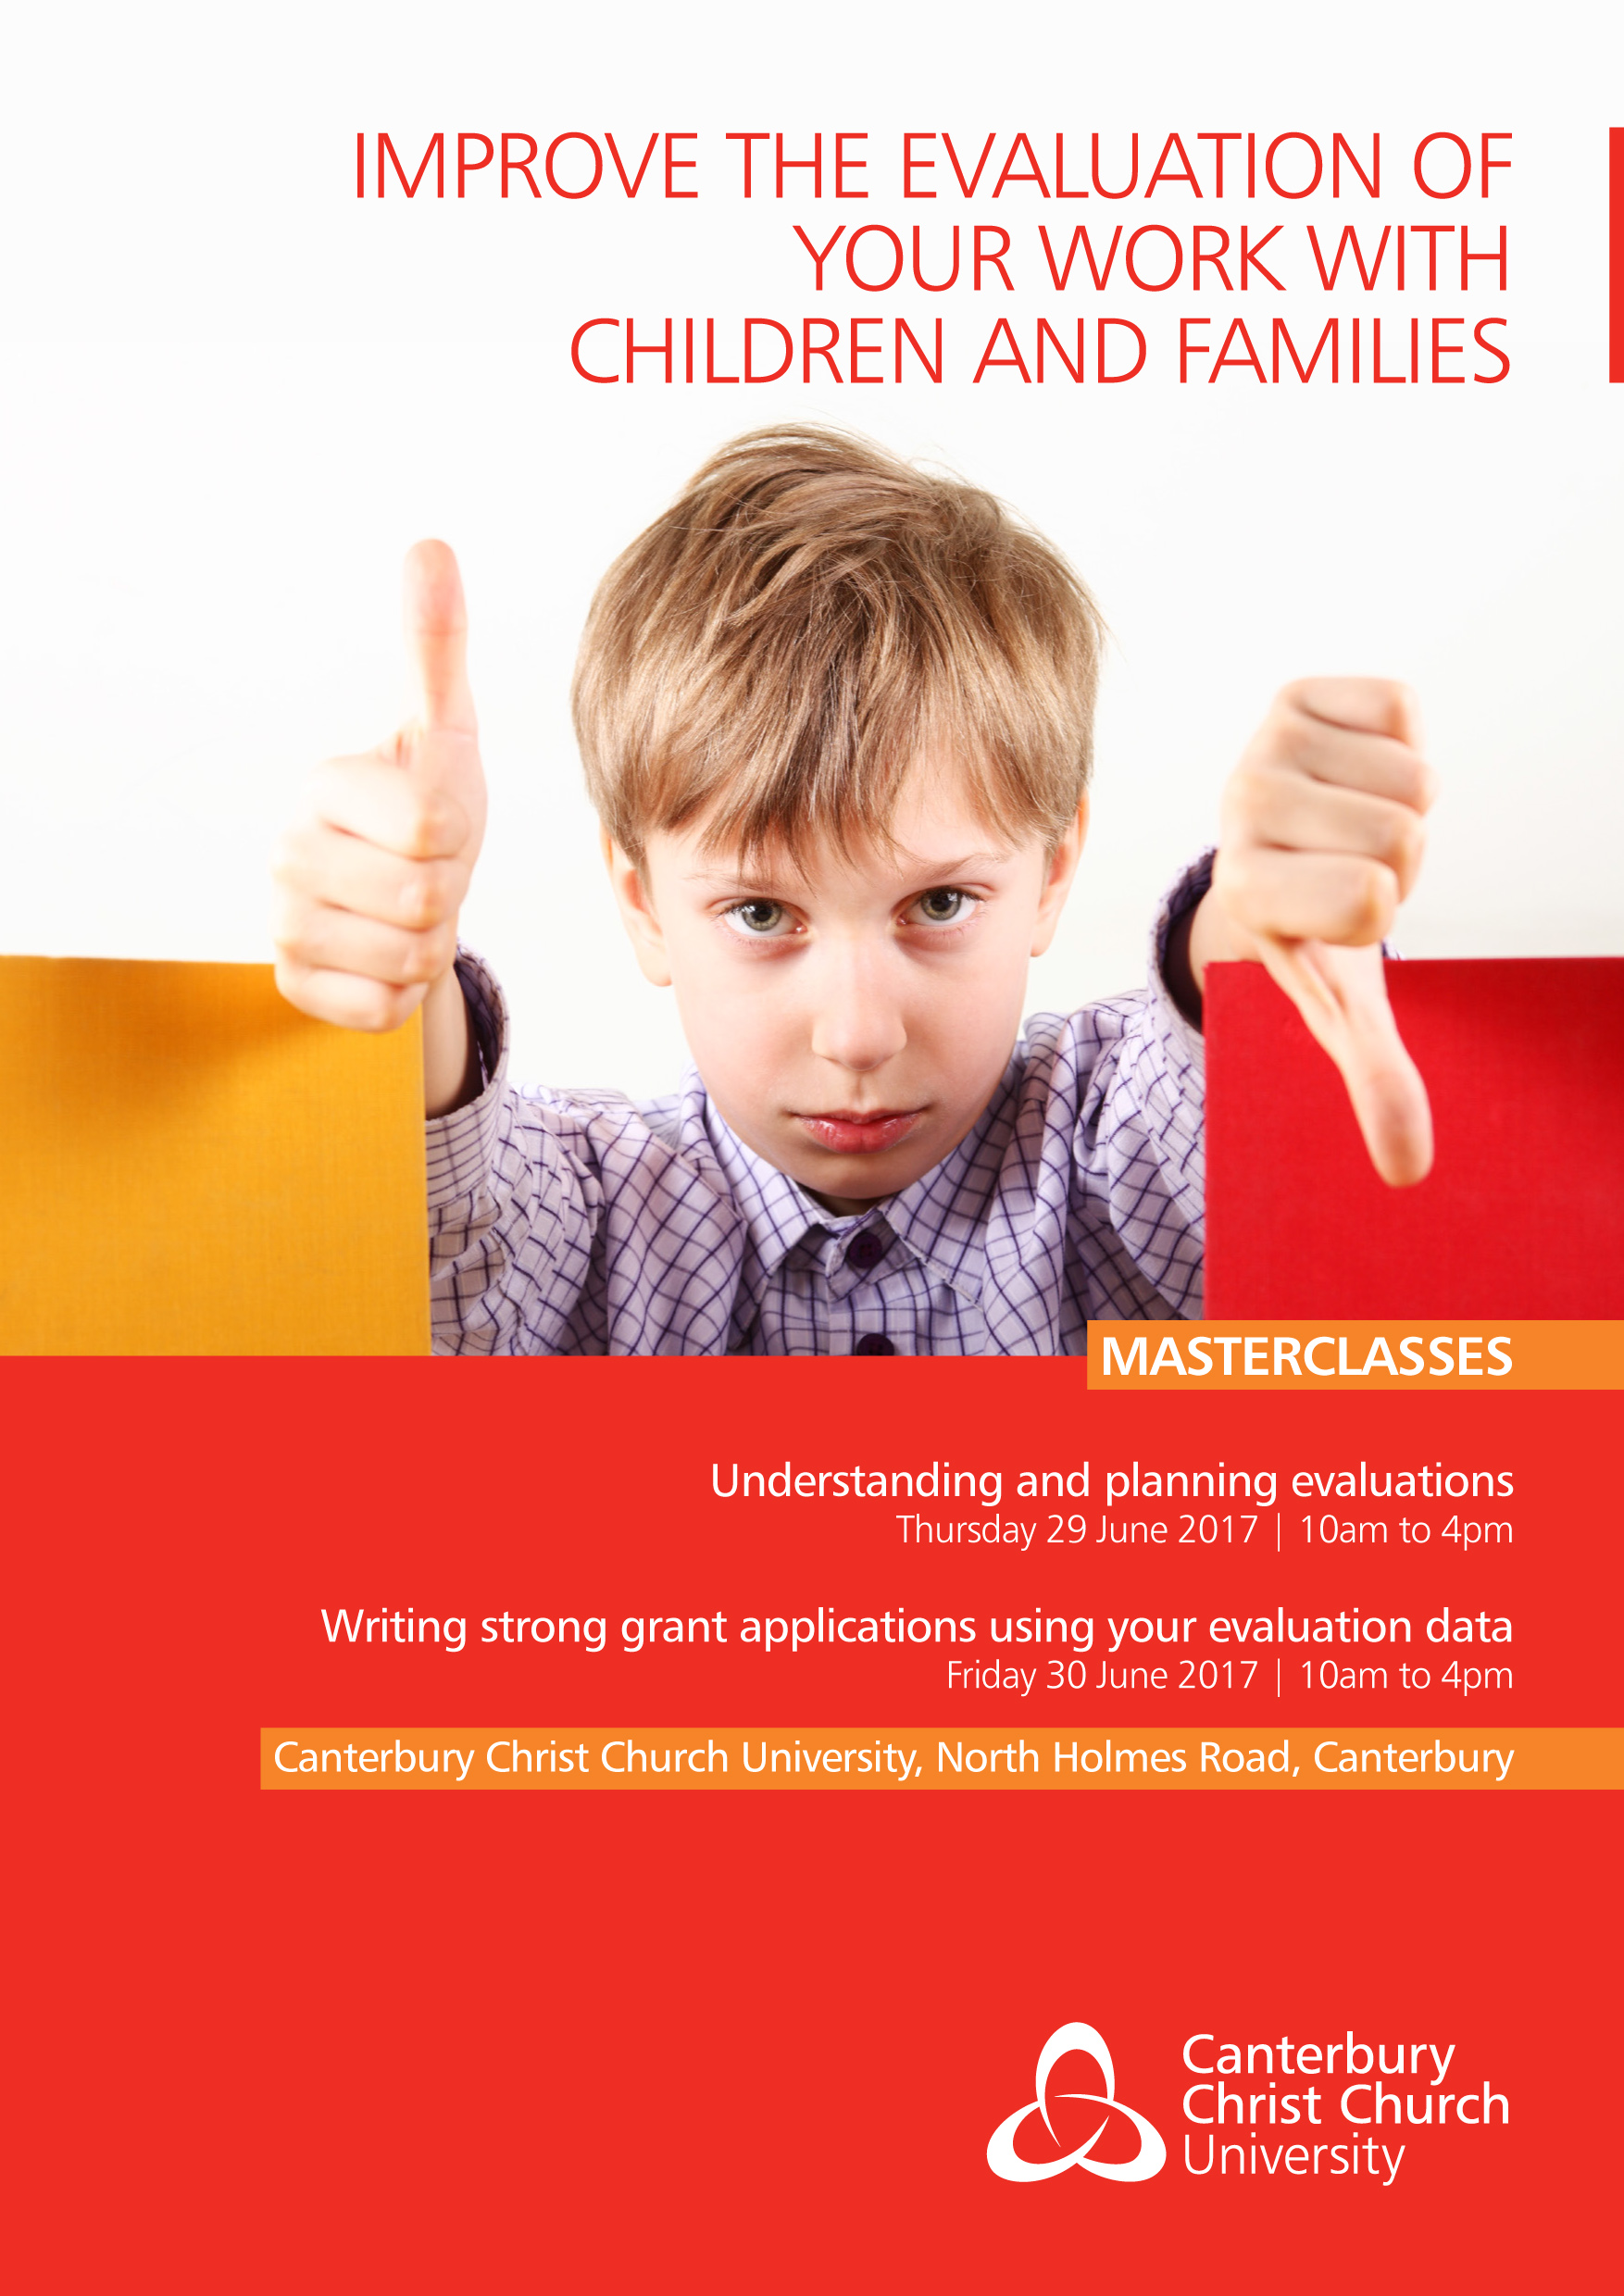 Charity Evaluation | Improve The Evaluation Of Your Work With Children And Families